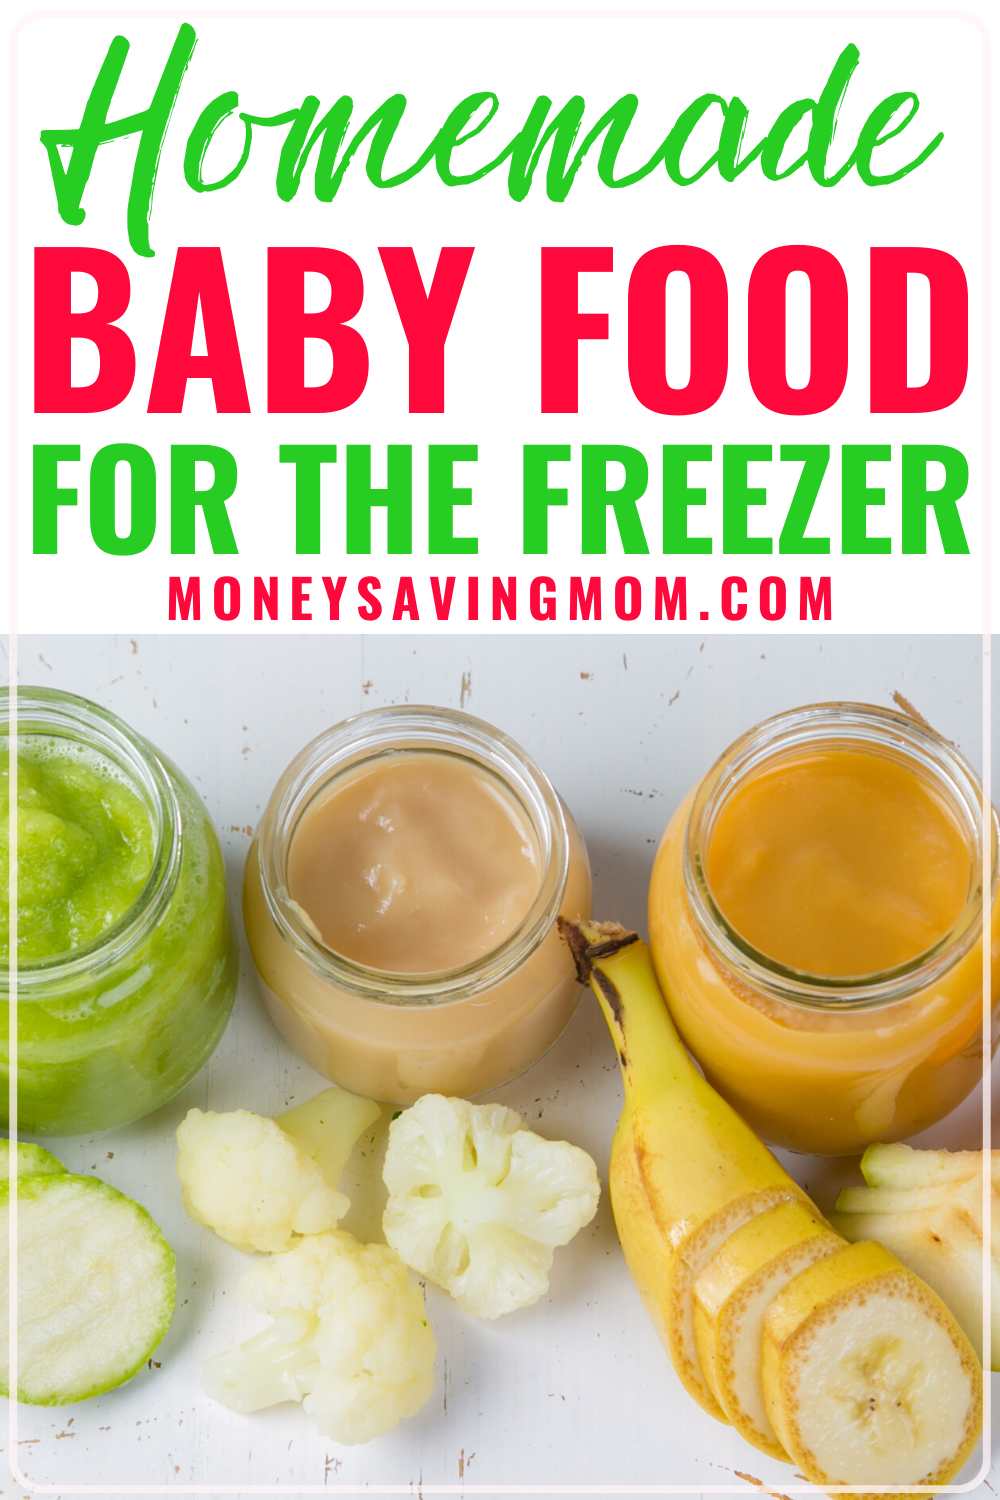 Homemade Baby Food for the Freezer